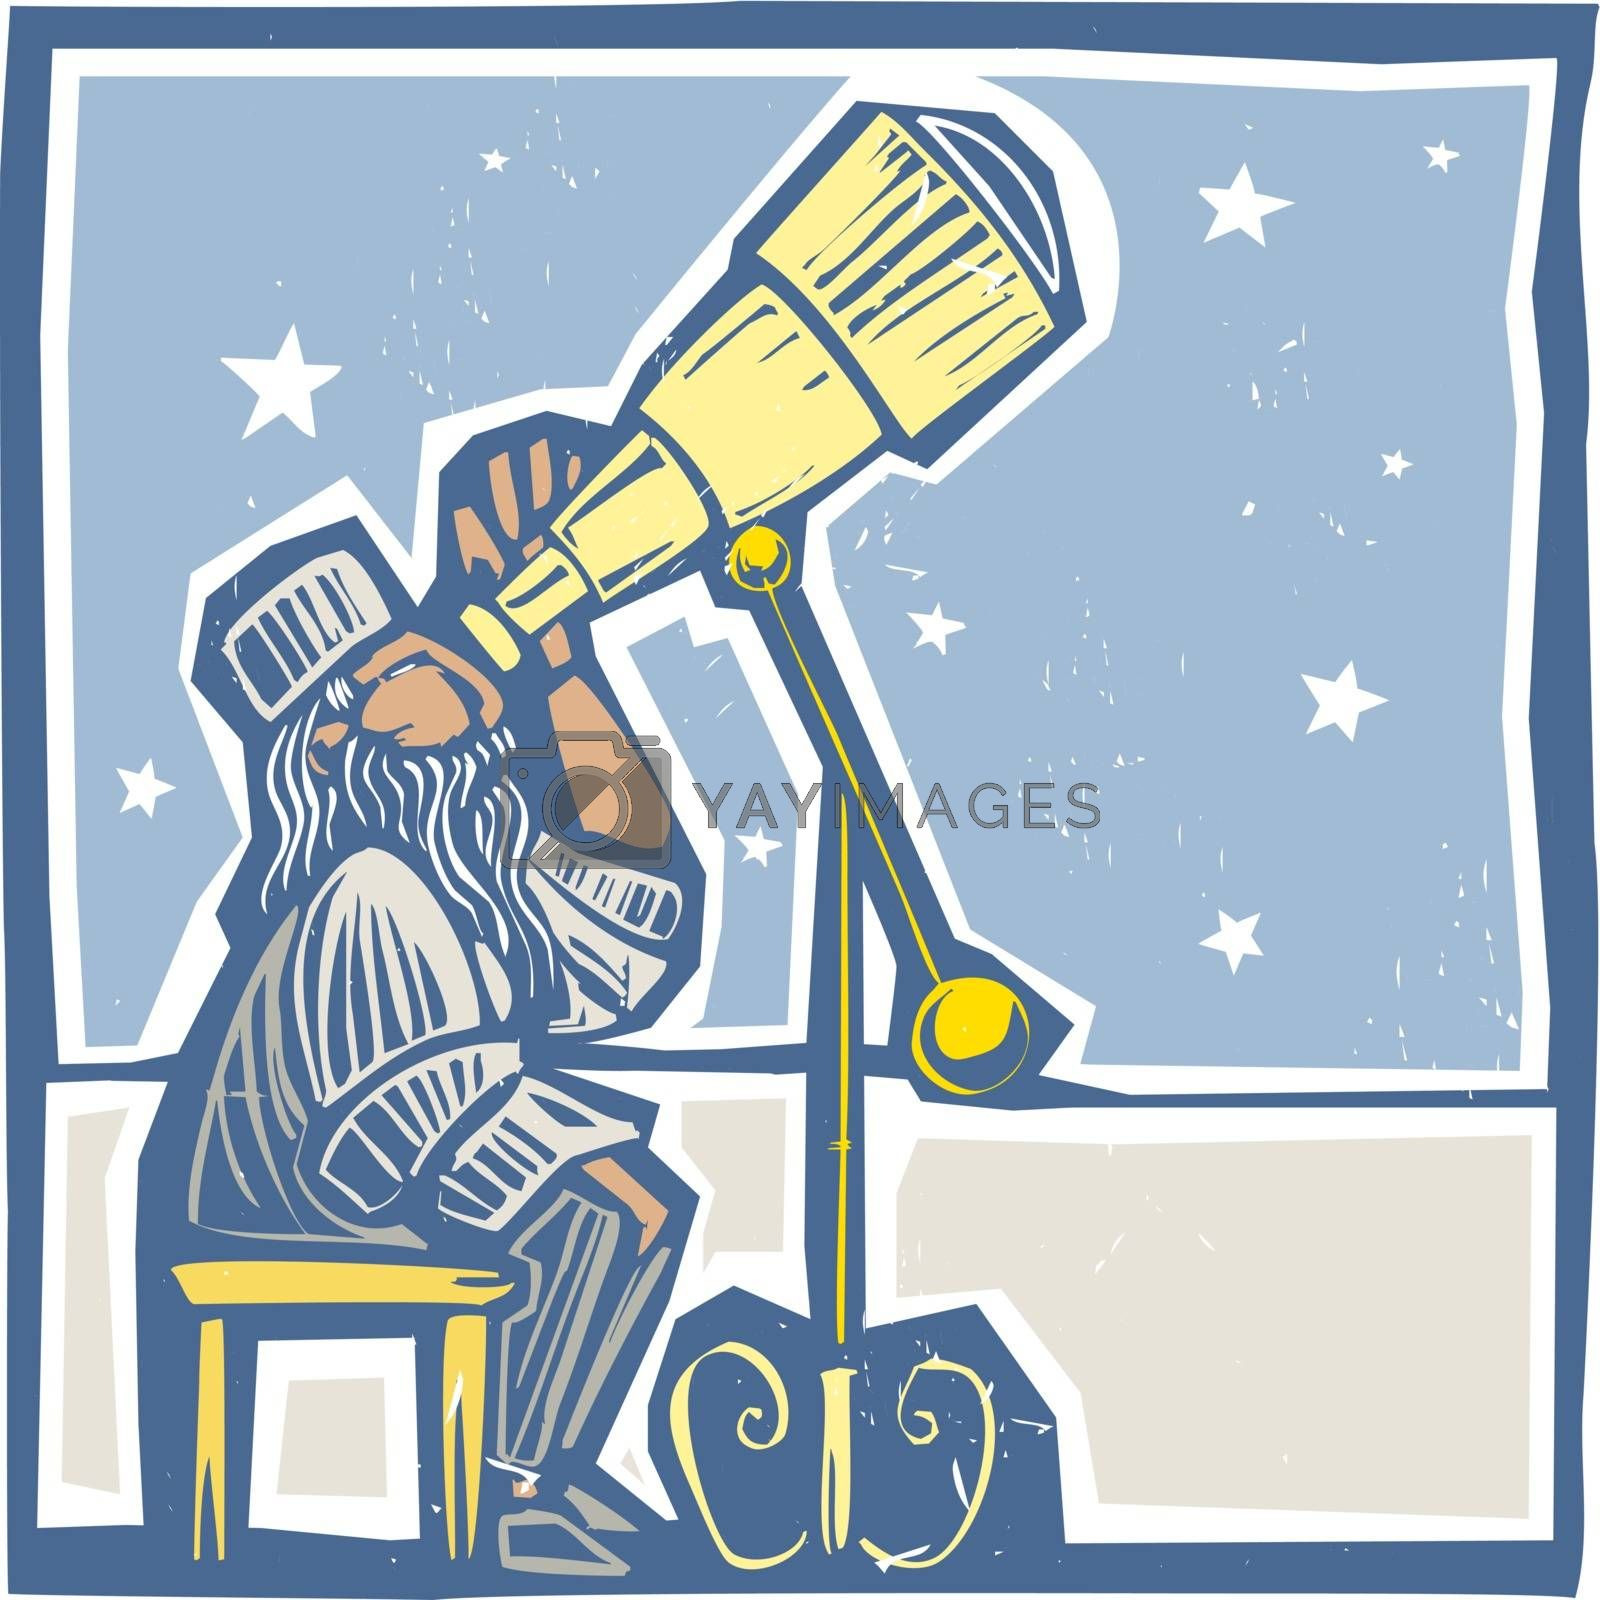 Astronomer at night by Xochicalco